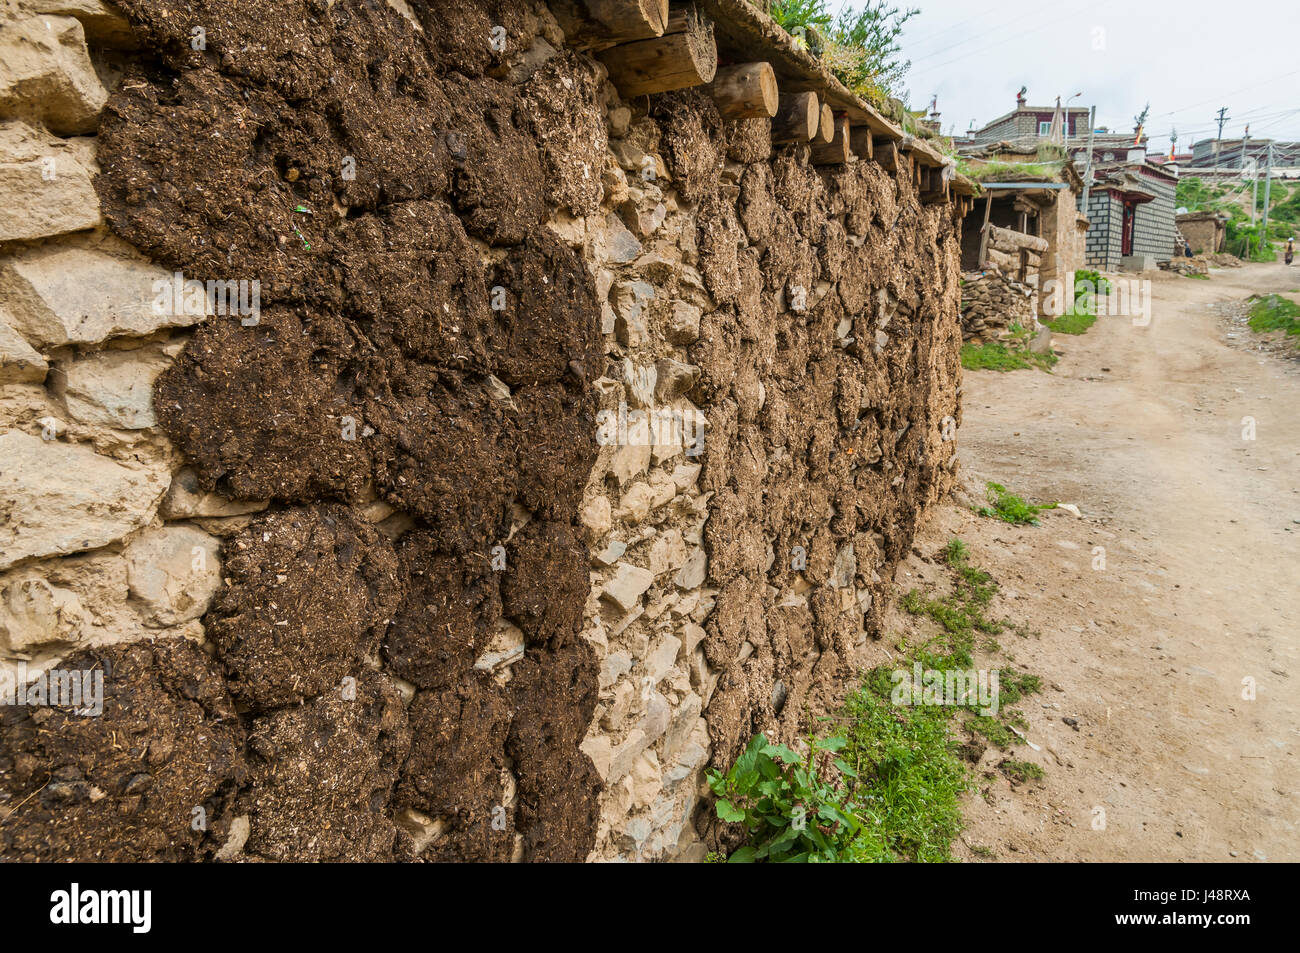 Tibetan house's wall, the locals stick cow's feces to dry it and use it as a combustible for heating water - Stock Image